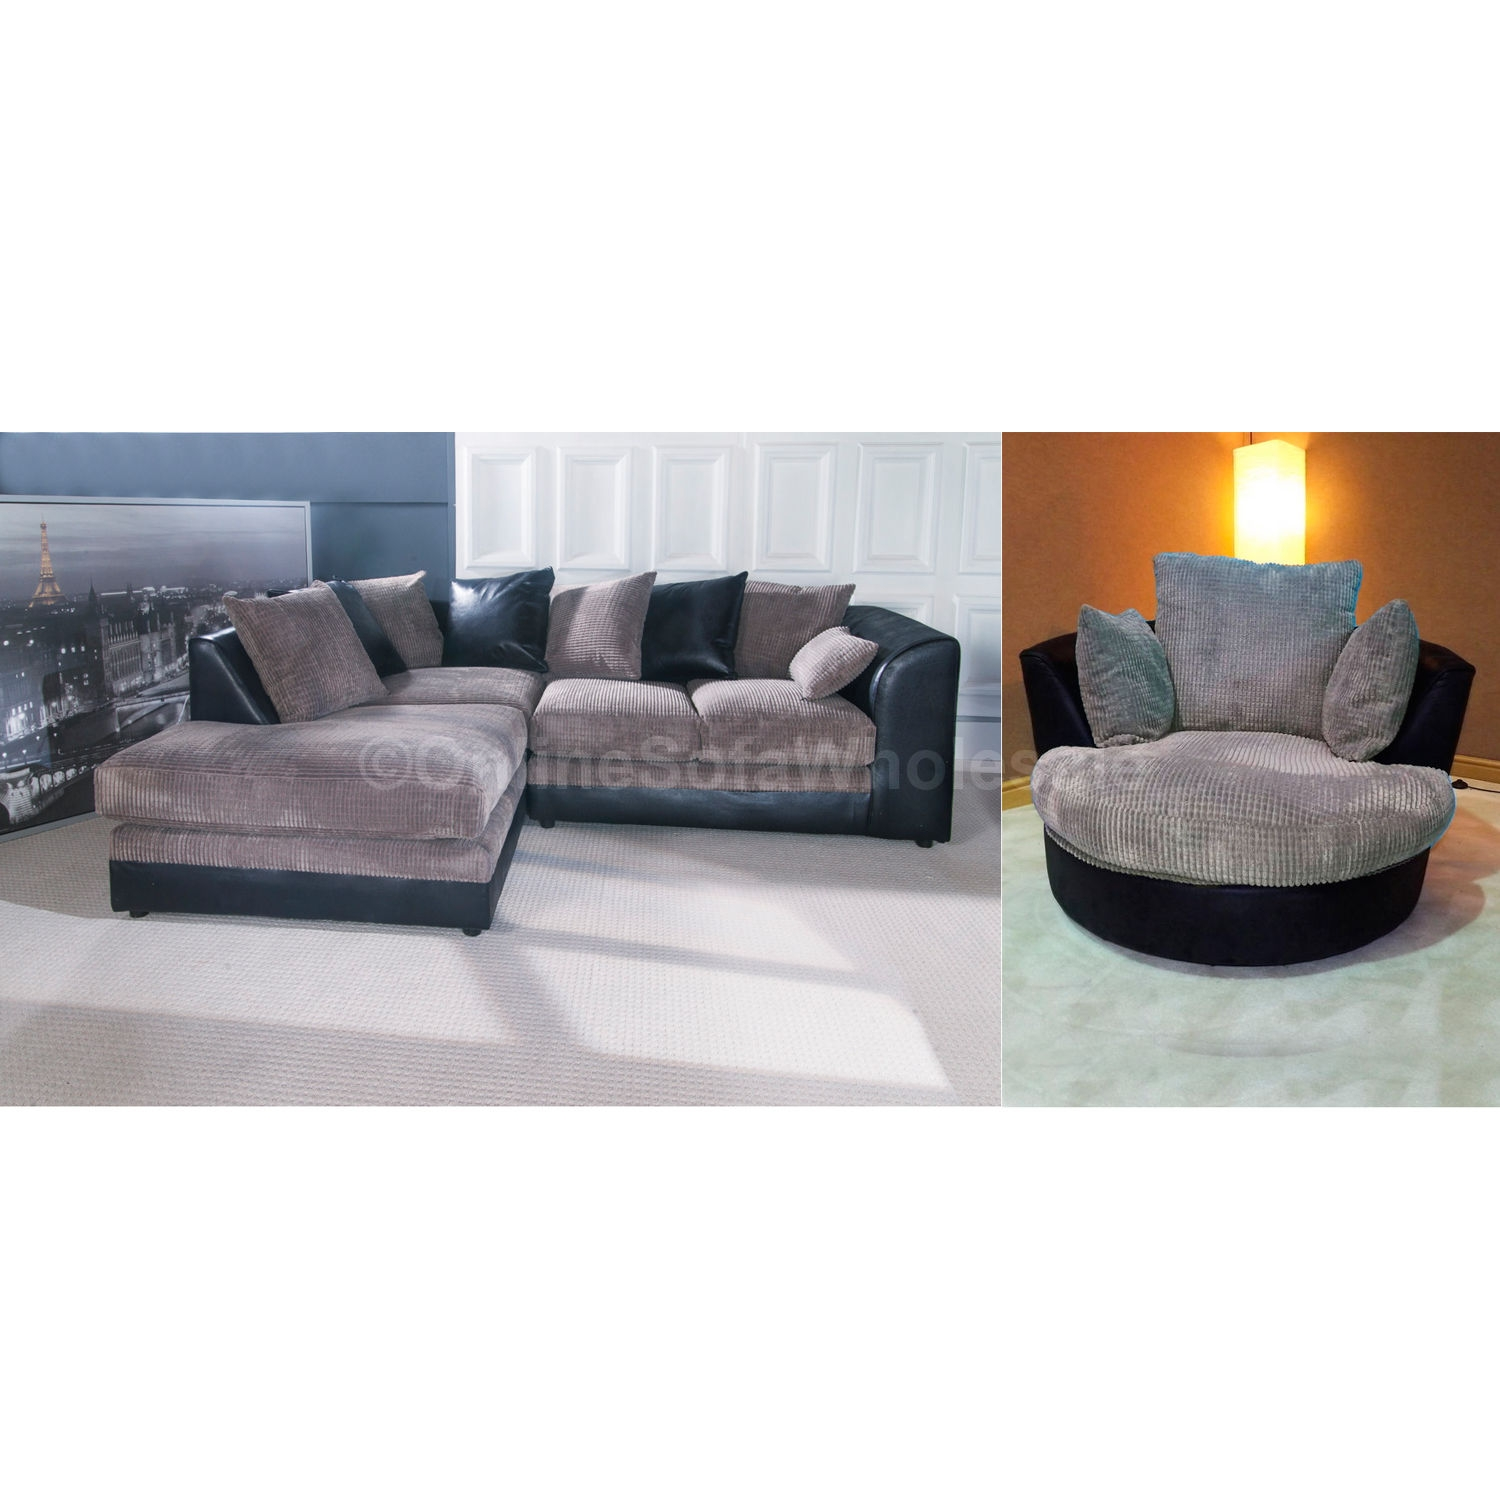 Corner Sofa With Swivel Chair Best Selling Ur7 Umpsa 78 Sofas With Corner Sofa And Swivel Chairs (Image 12 of 15)